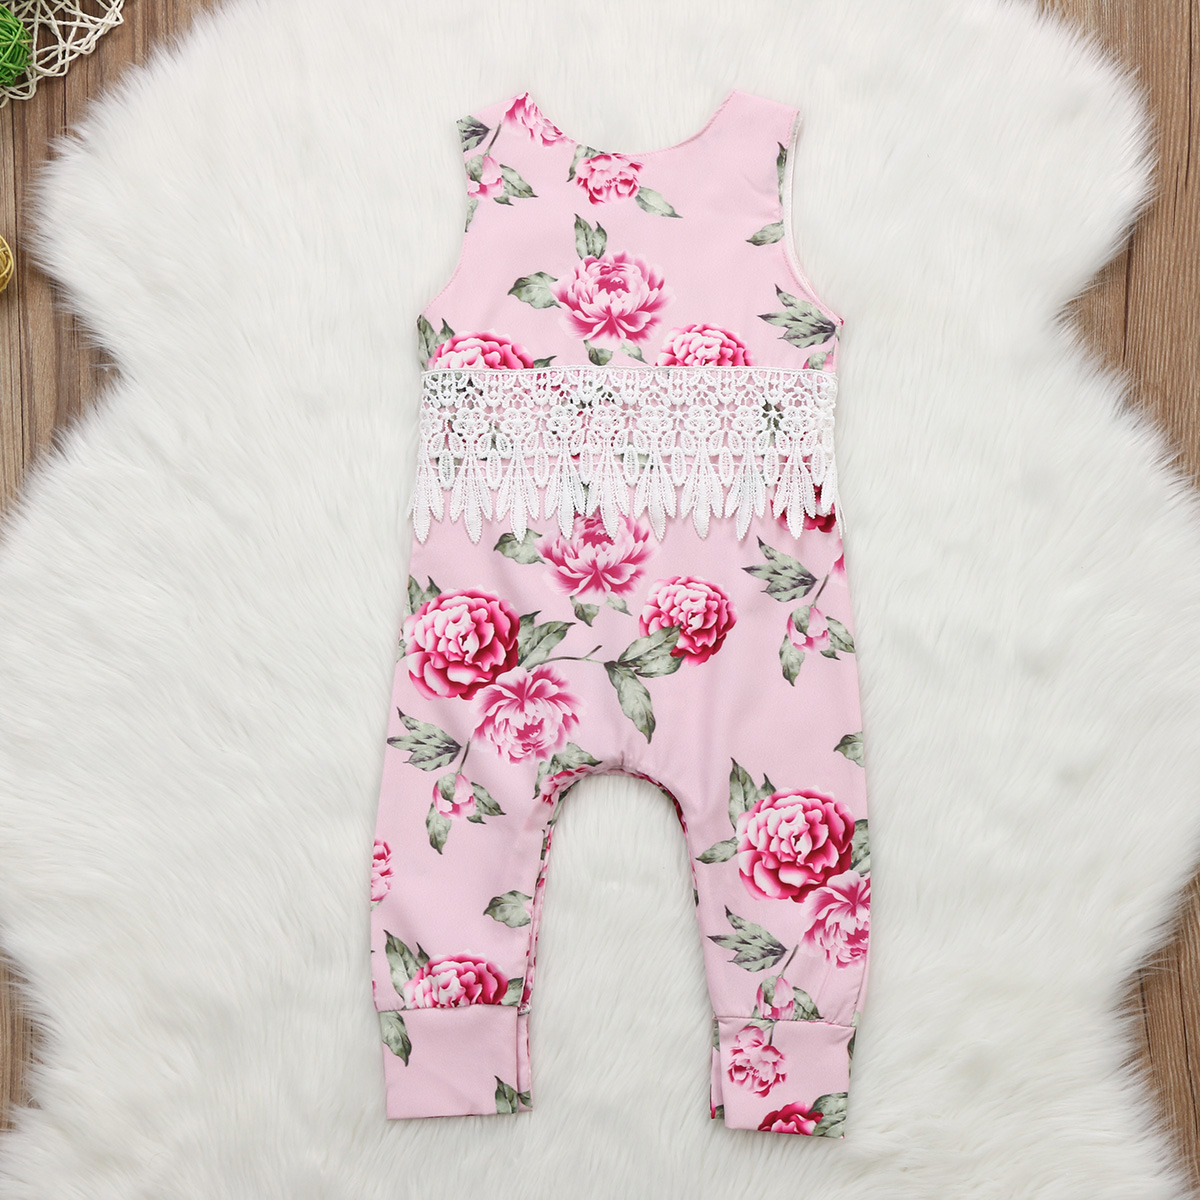 Infant Baby Girl Floral Lace Rompers Jumpsuit Pink Sleeveless Vest One Piece Romper Outfits Summer Kids Clothes